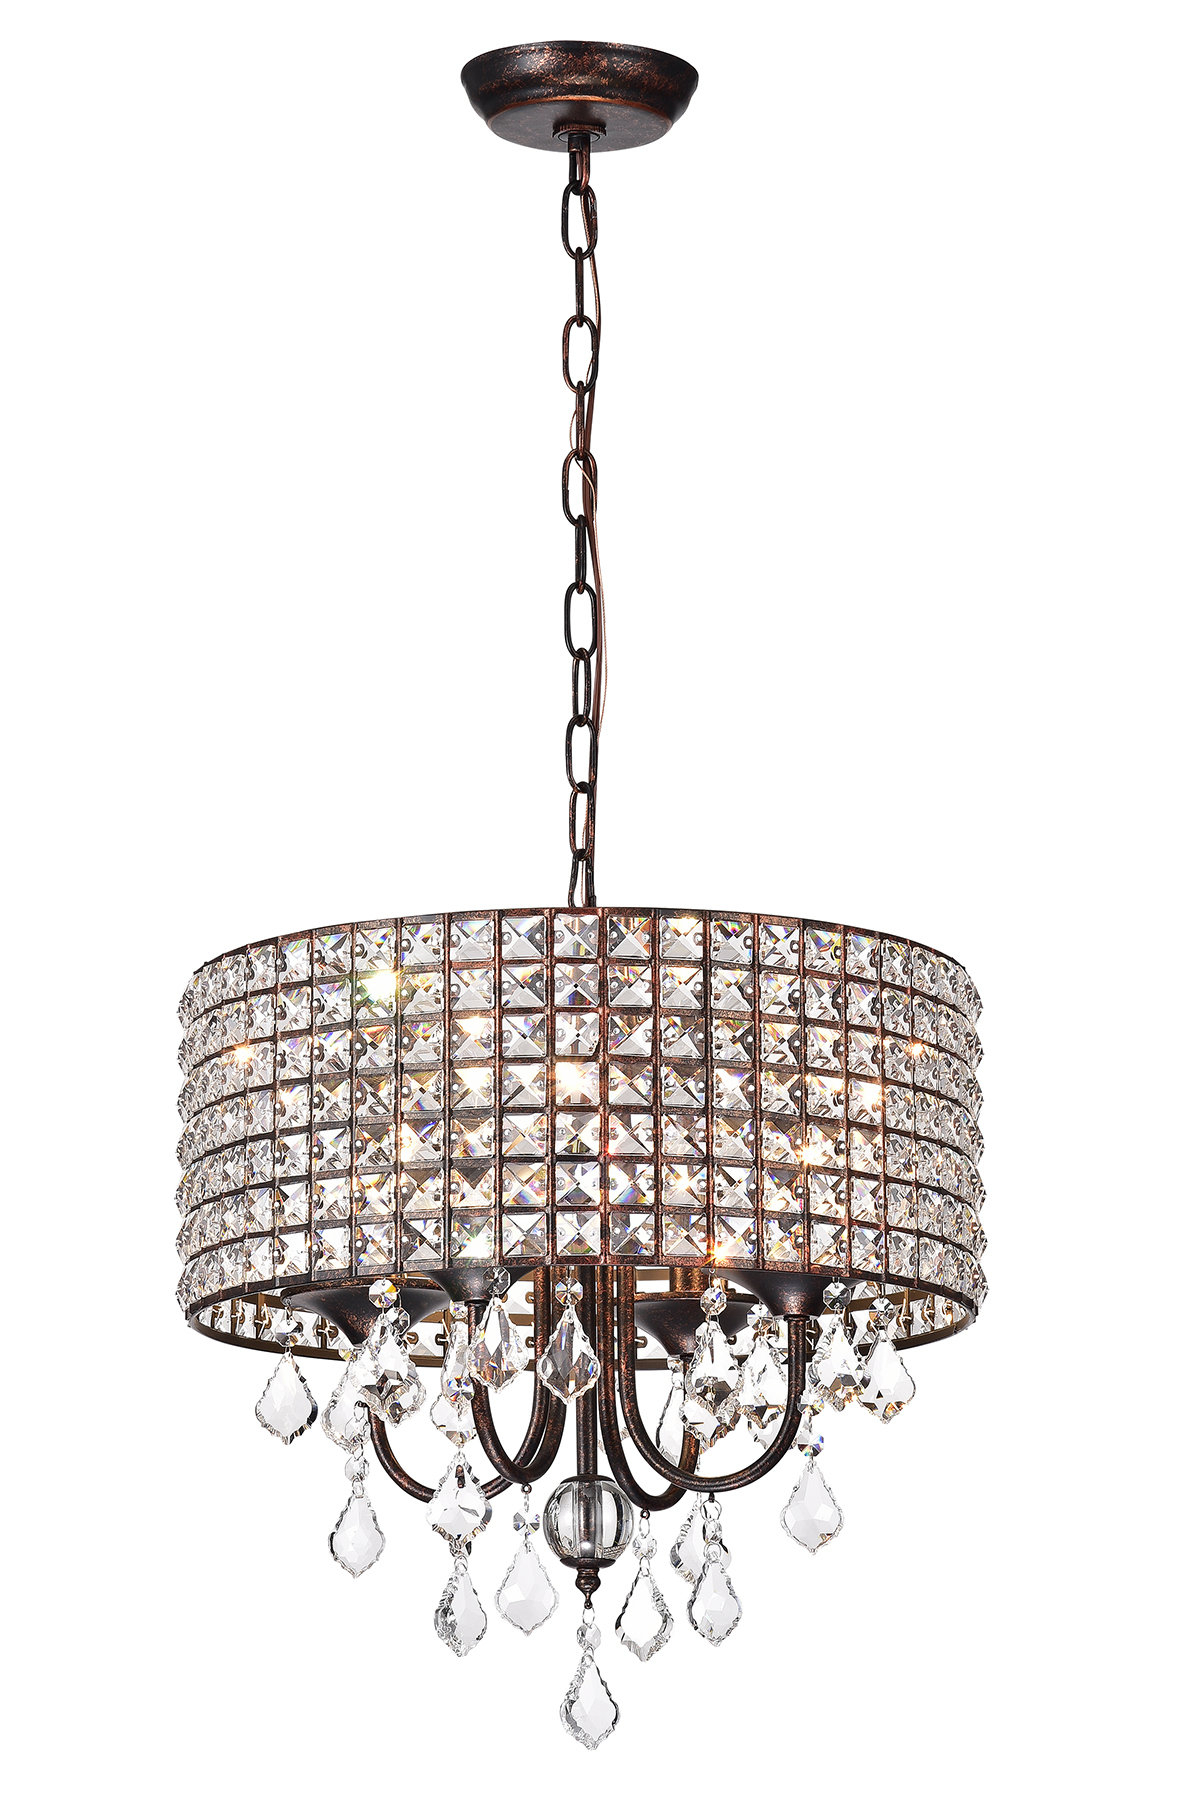 Mckamey 4 Light Crystal Chandeliers With 2019 Lavada 4 Light Drum Chandelier (View 13 of 20)